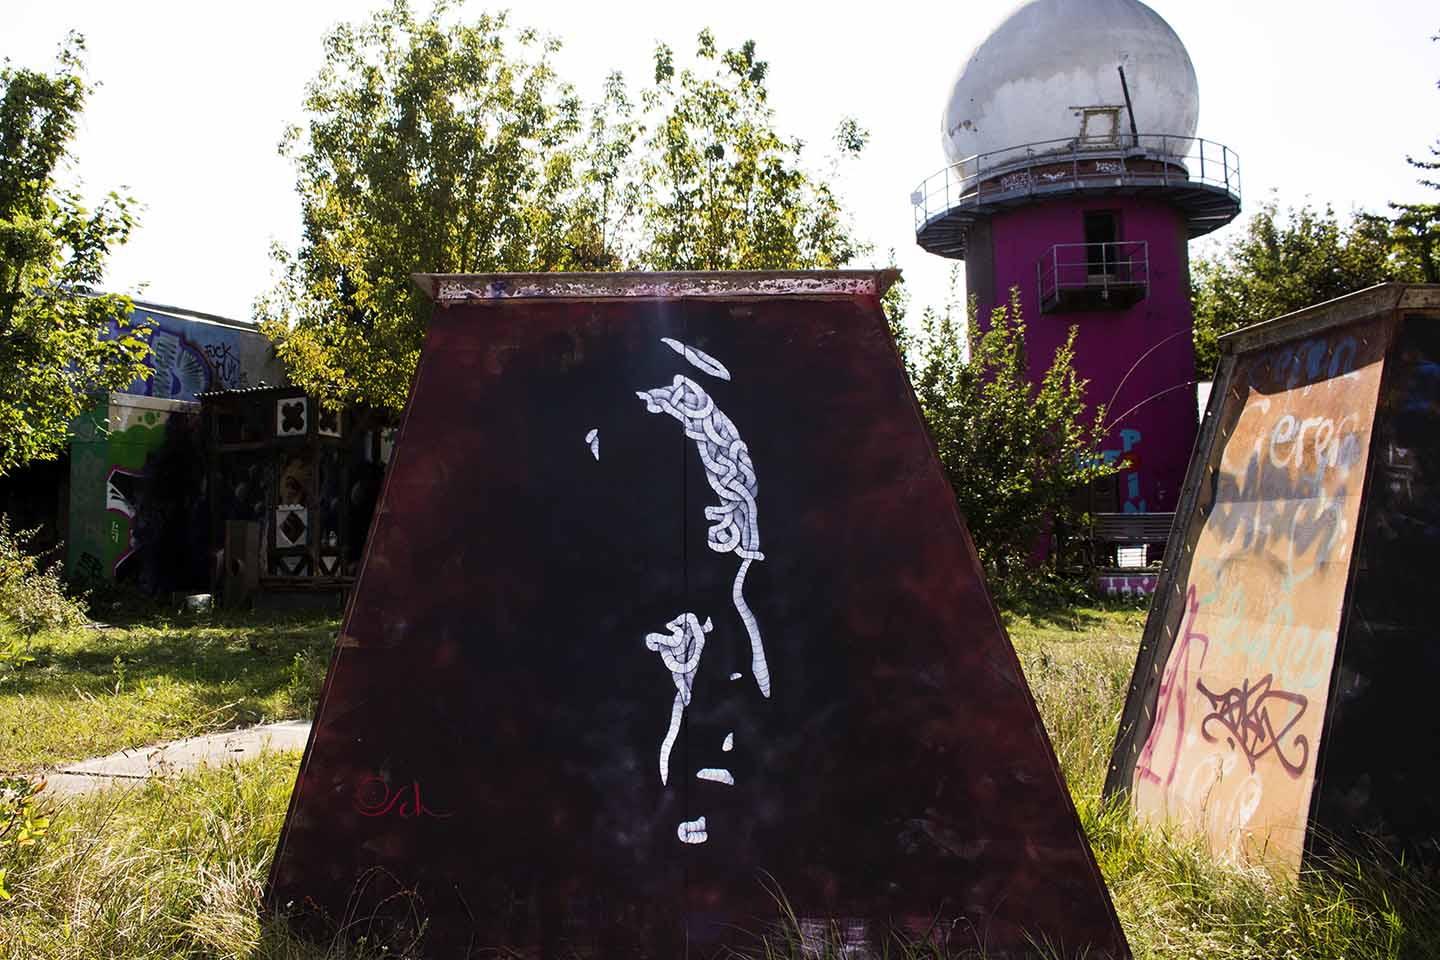 "Otto Schade aka Osch: The New Godfather of the Street"" on Berlin Teufelsberg"